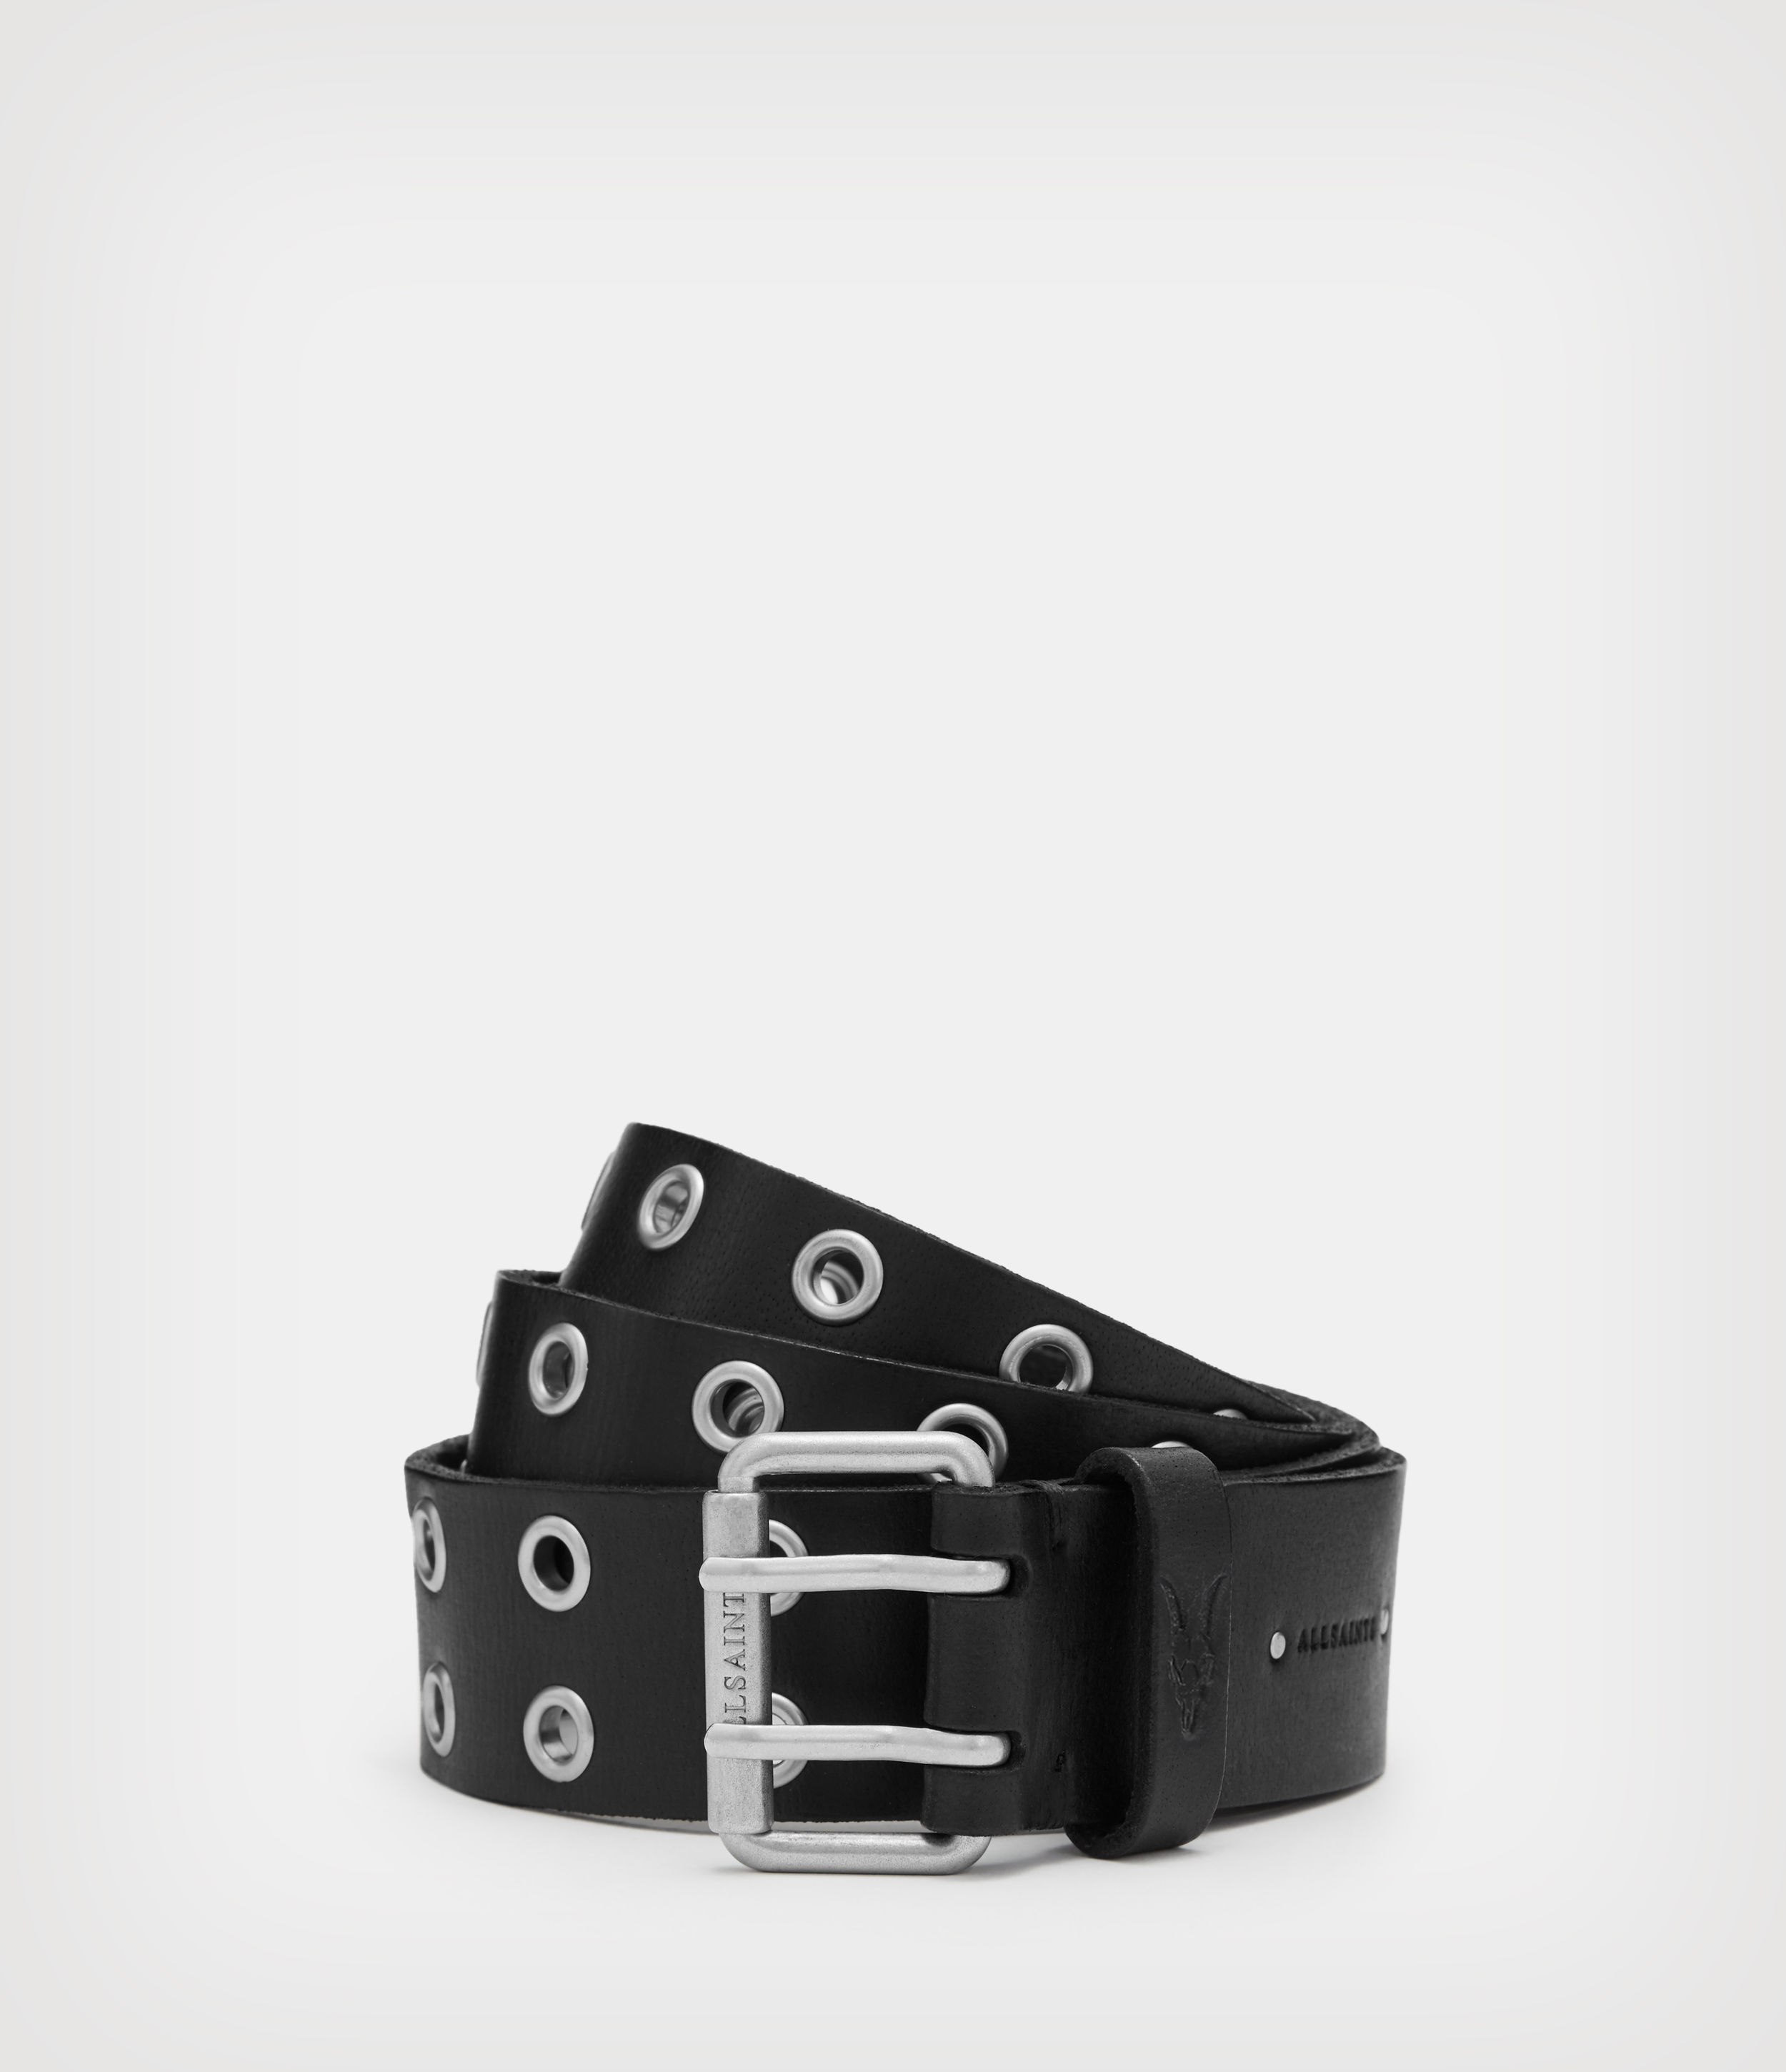 AllSaints Mens Sturge Leather Belt, Black, Size: 38